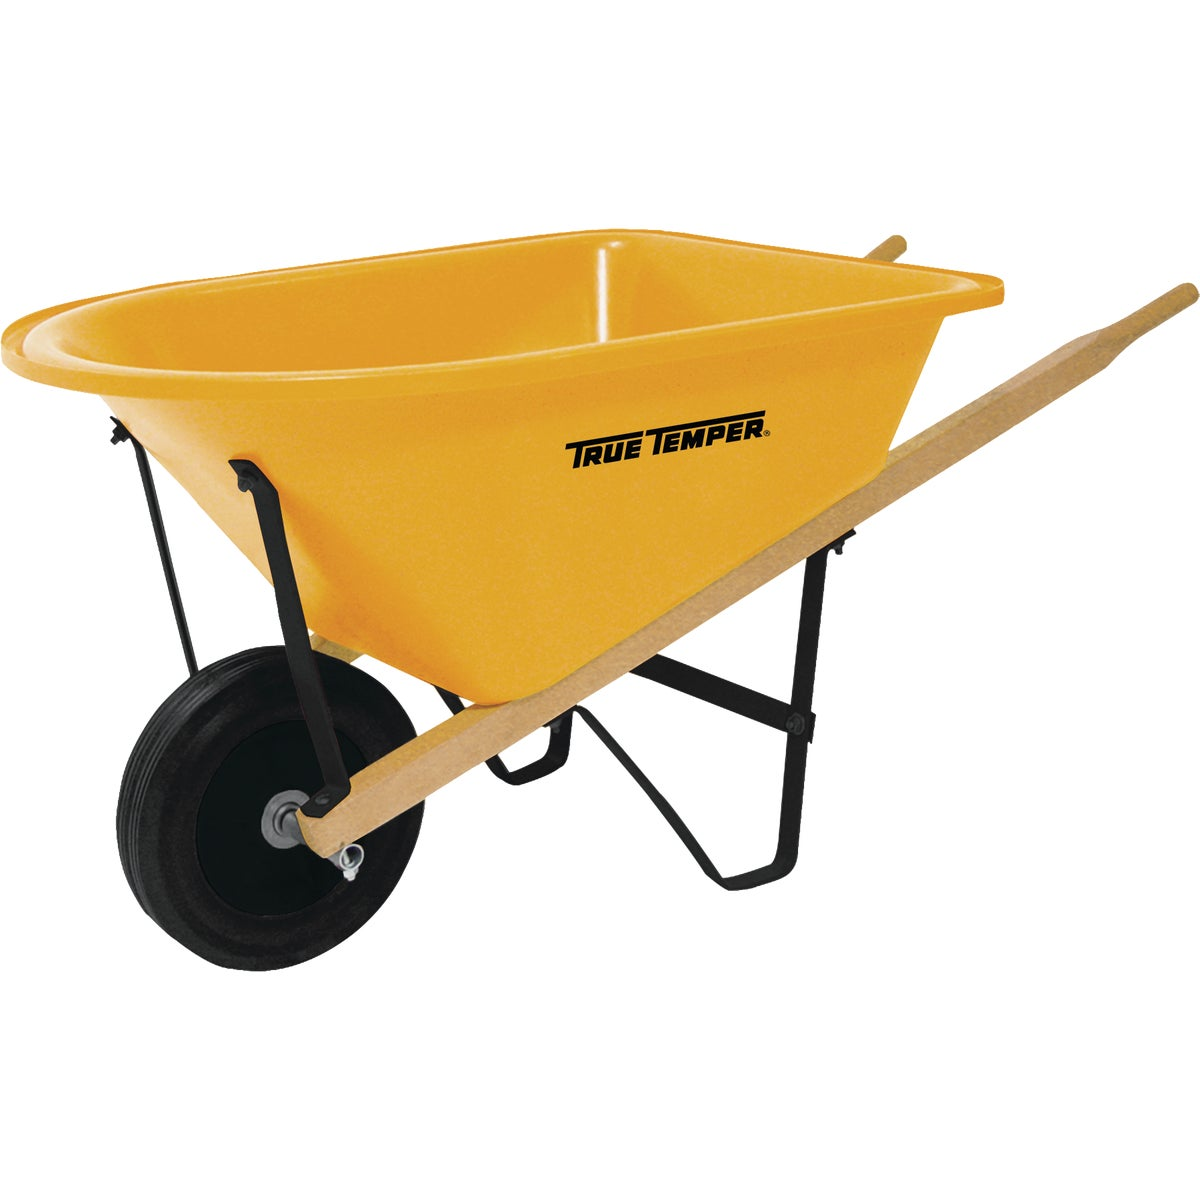 KIDS WHEELBARROW - 70073 by Marathon Industries